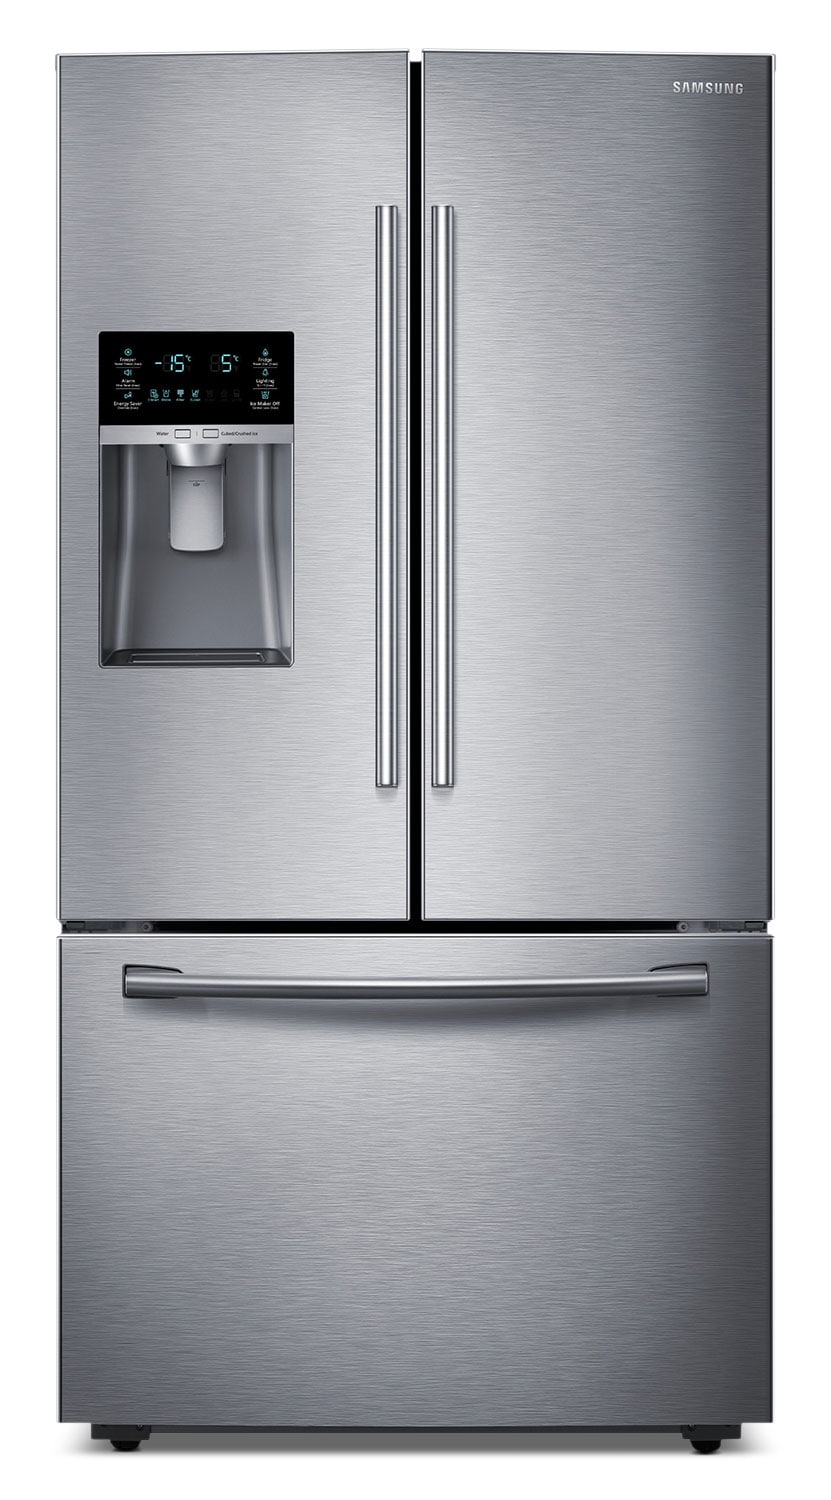 Refrigerators and Freezers - Samsung 28 Cu. Ft. French-Door Bottom-Freezer Refrigerator – Stainless Steel